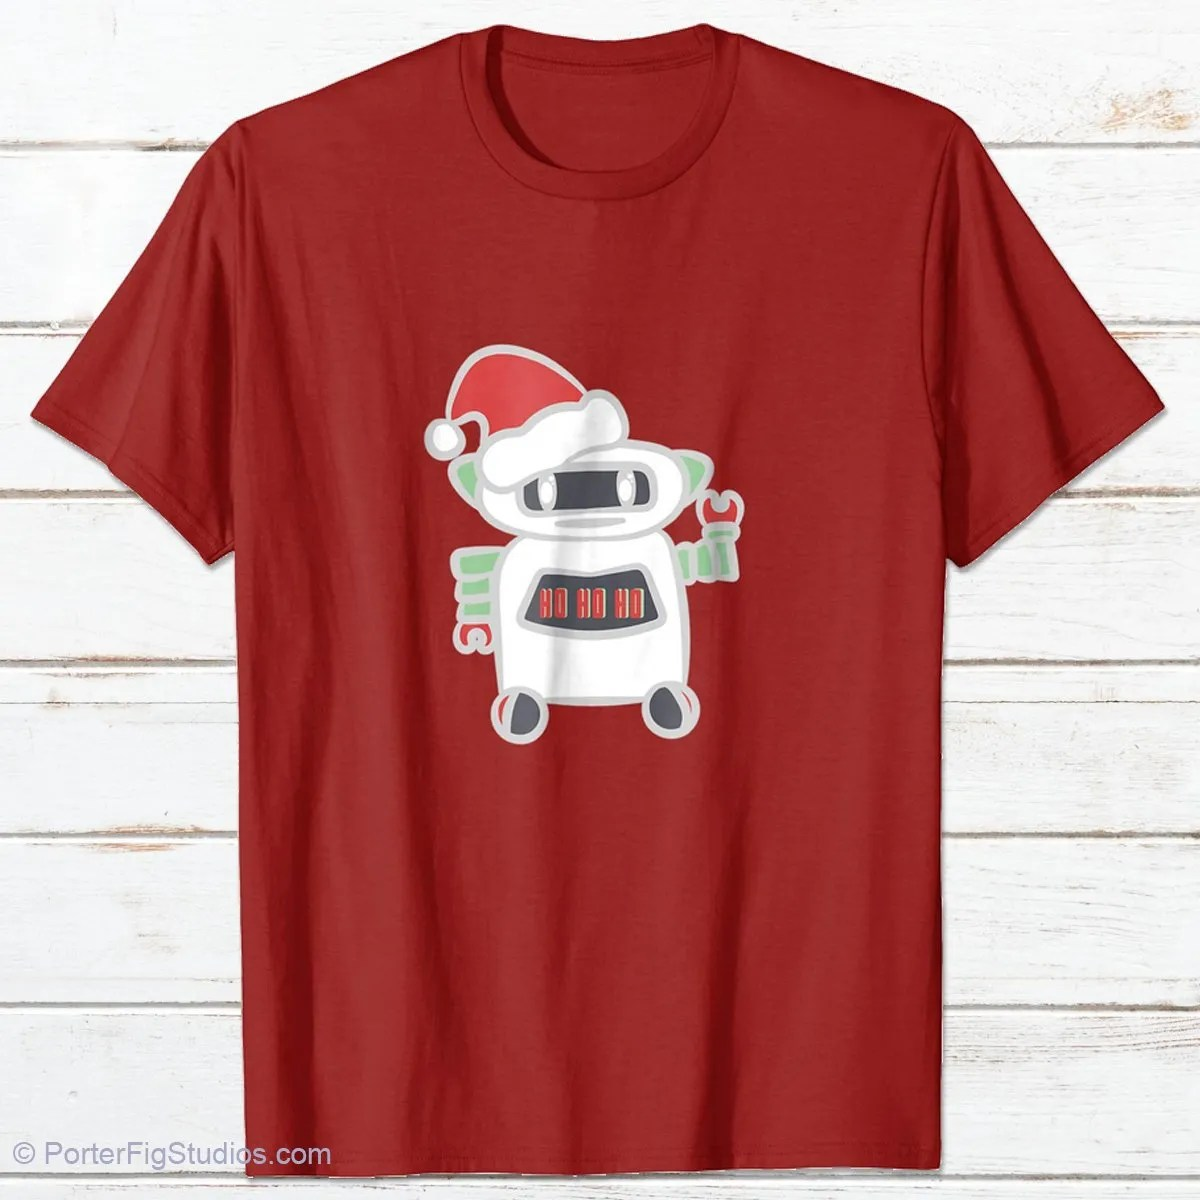 Robot Santa Claus Shirt Design